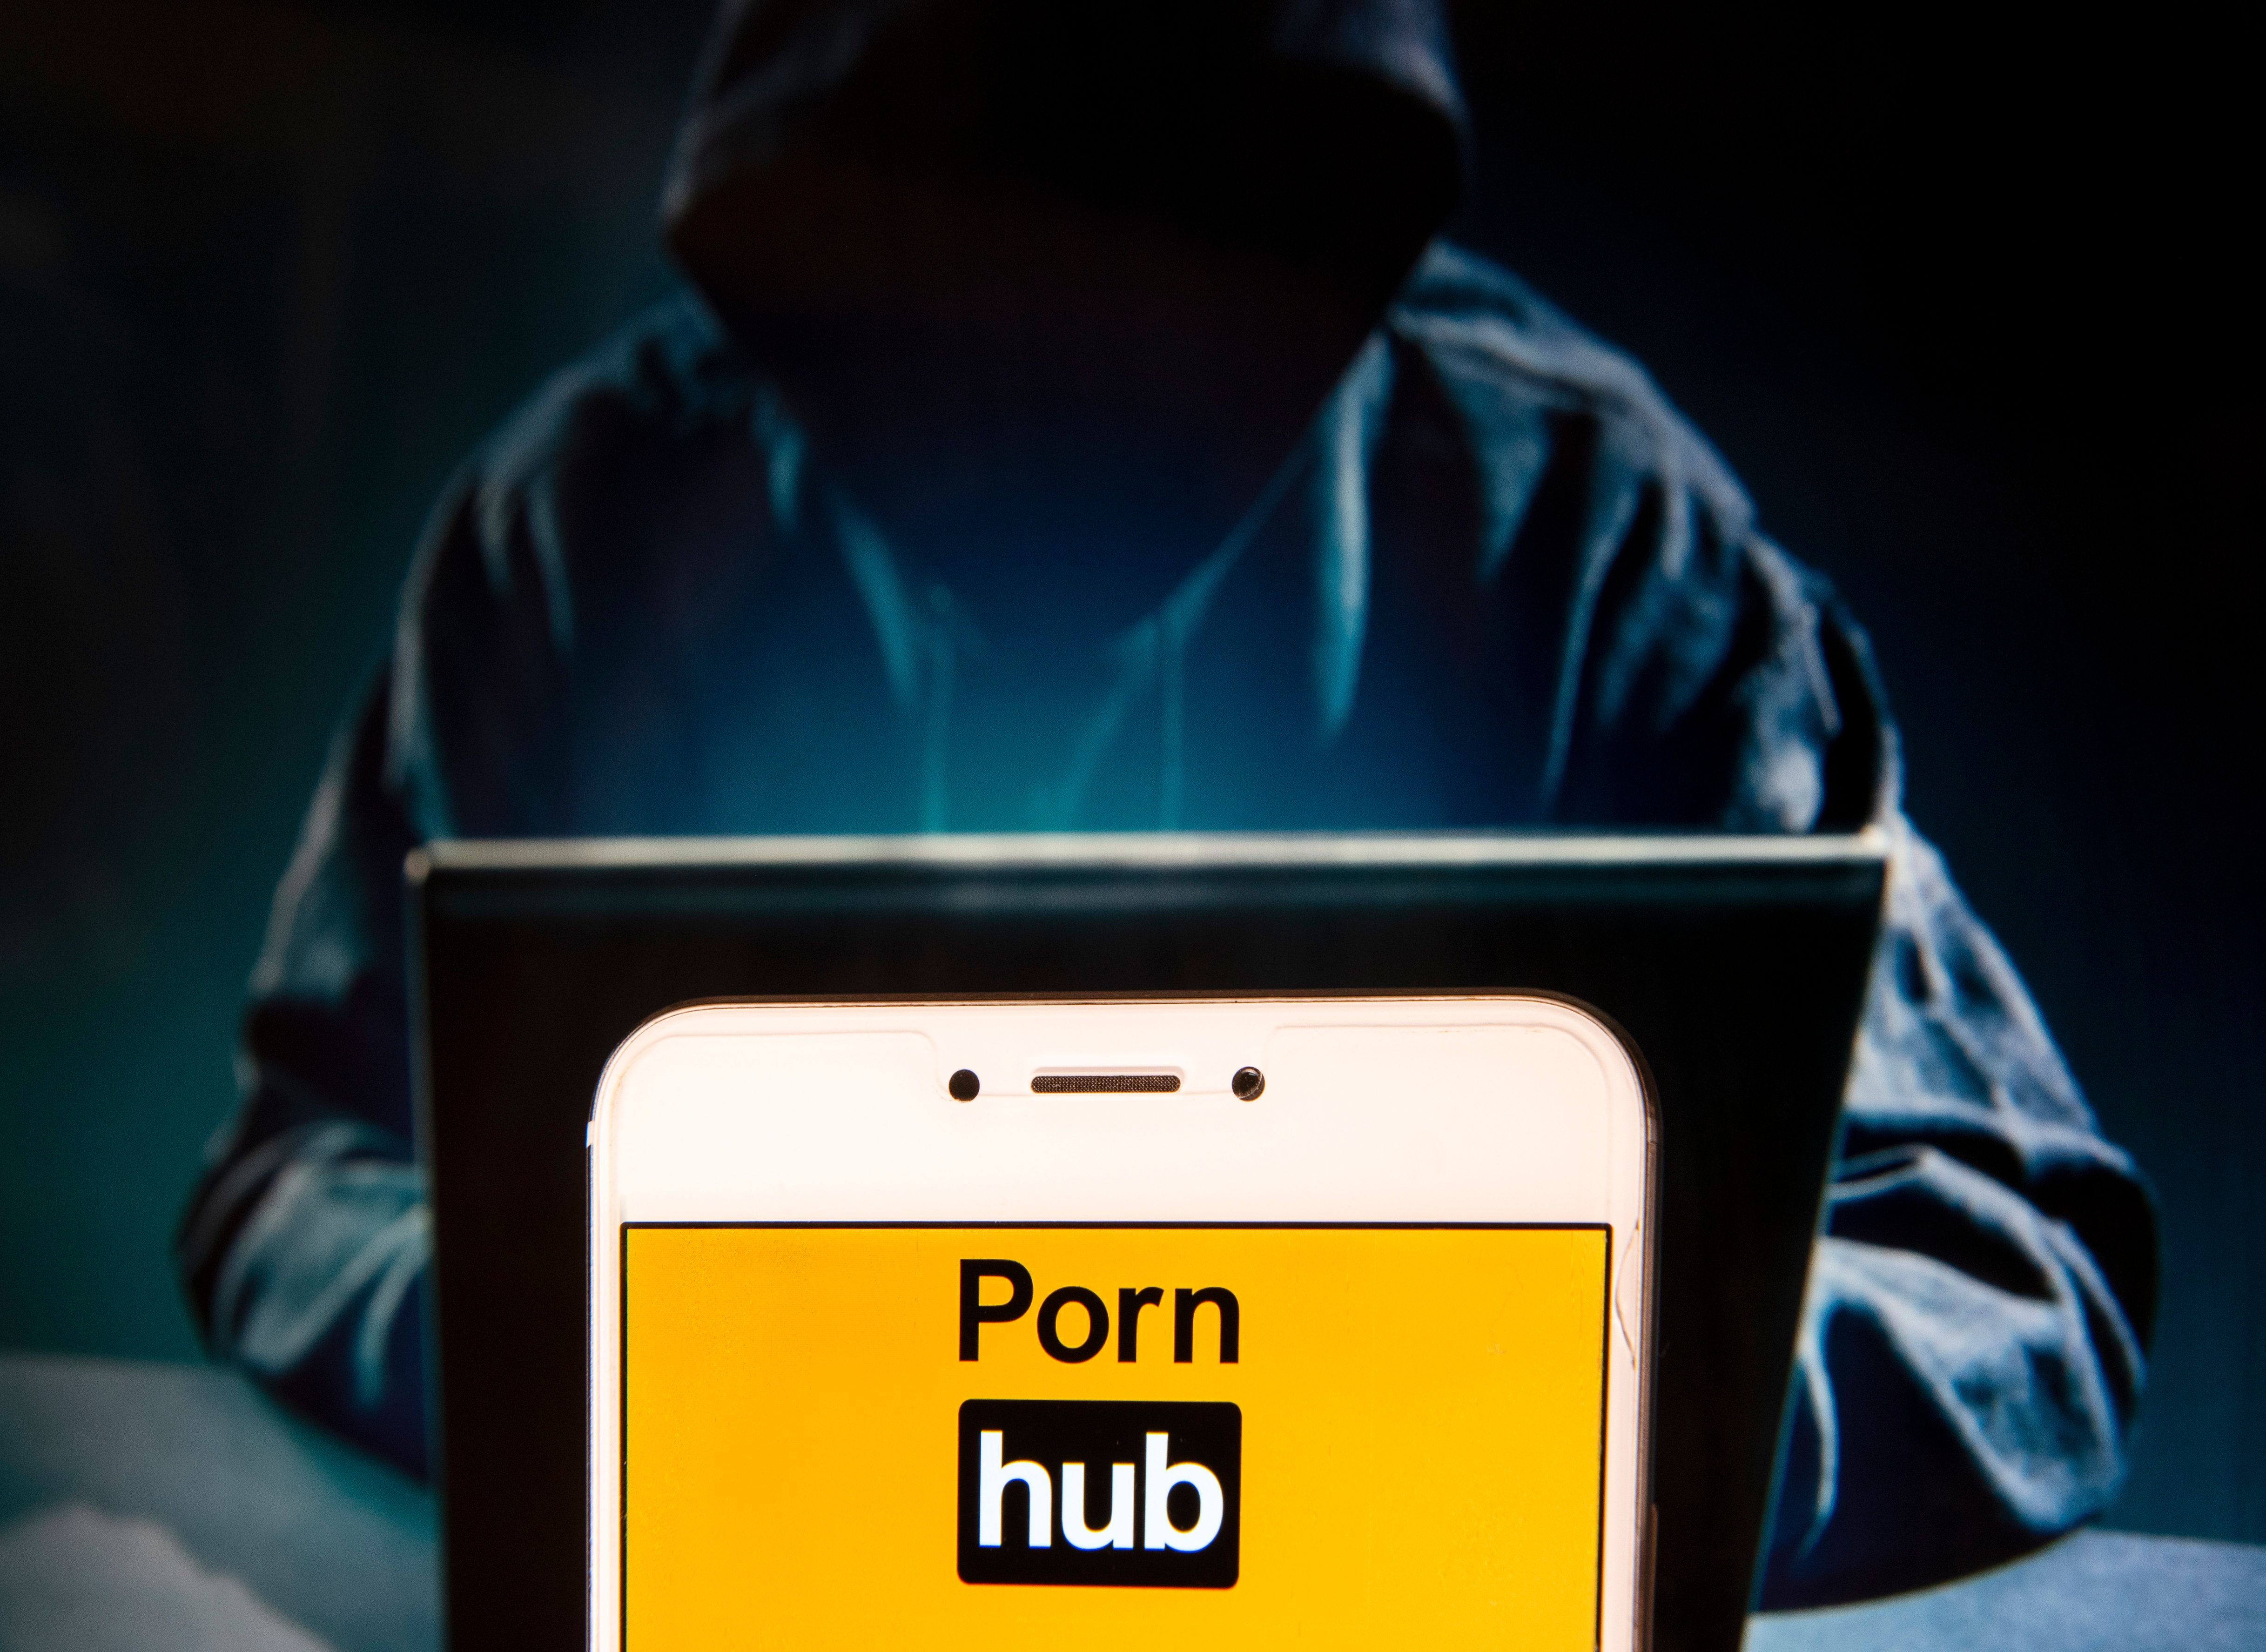 Comedian Posts Refreshingly Wholesome Videos To Pornhub That Poke Fun At